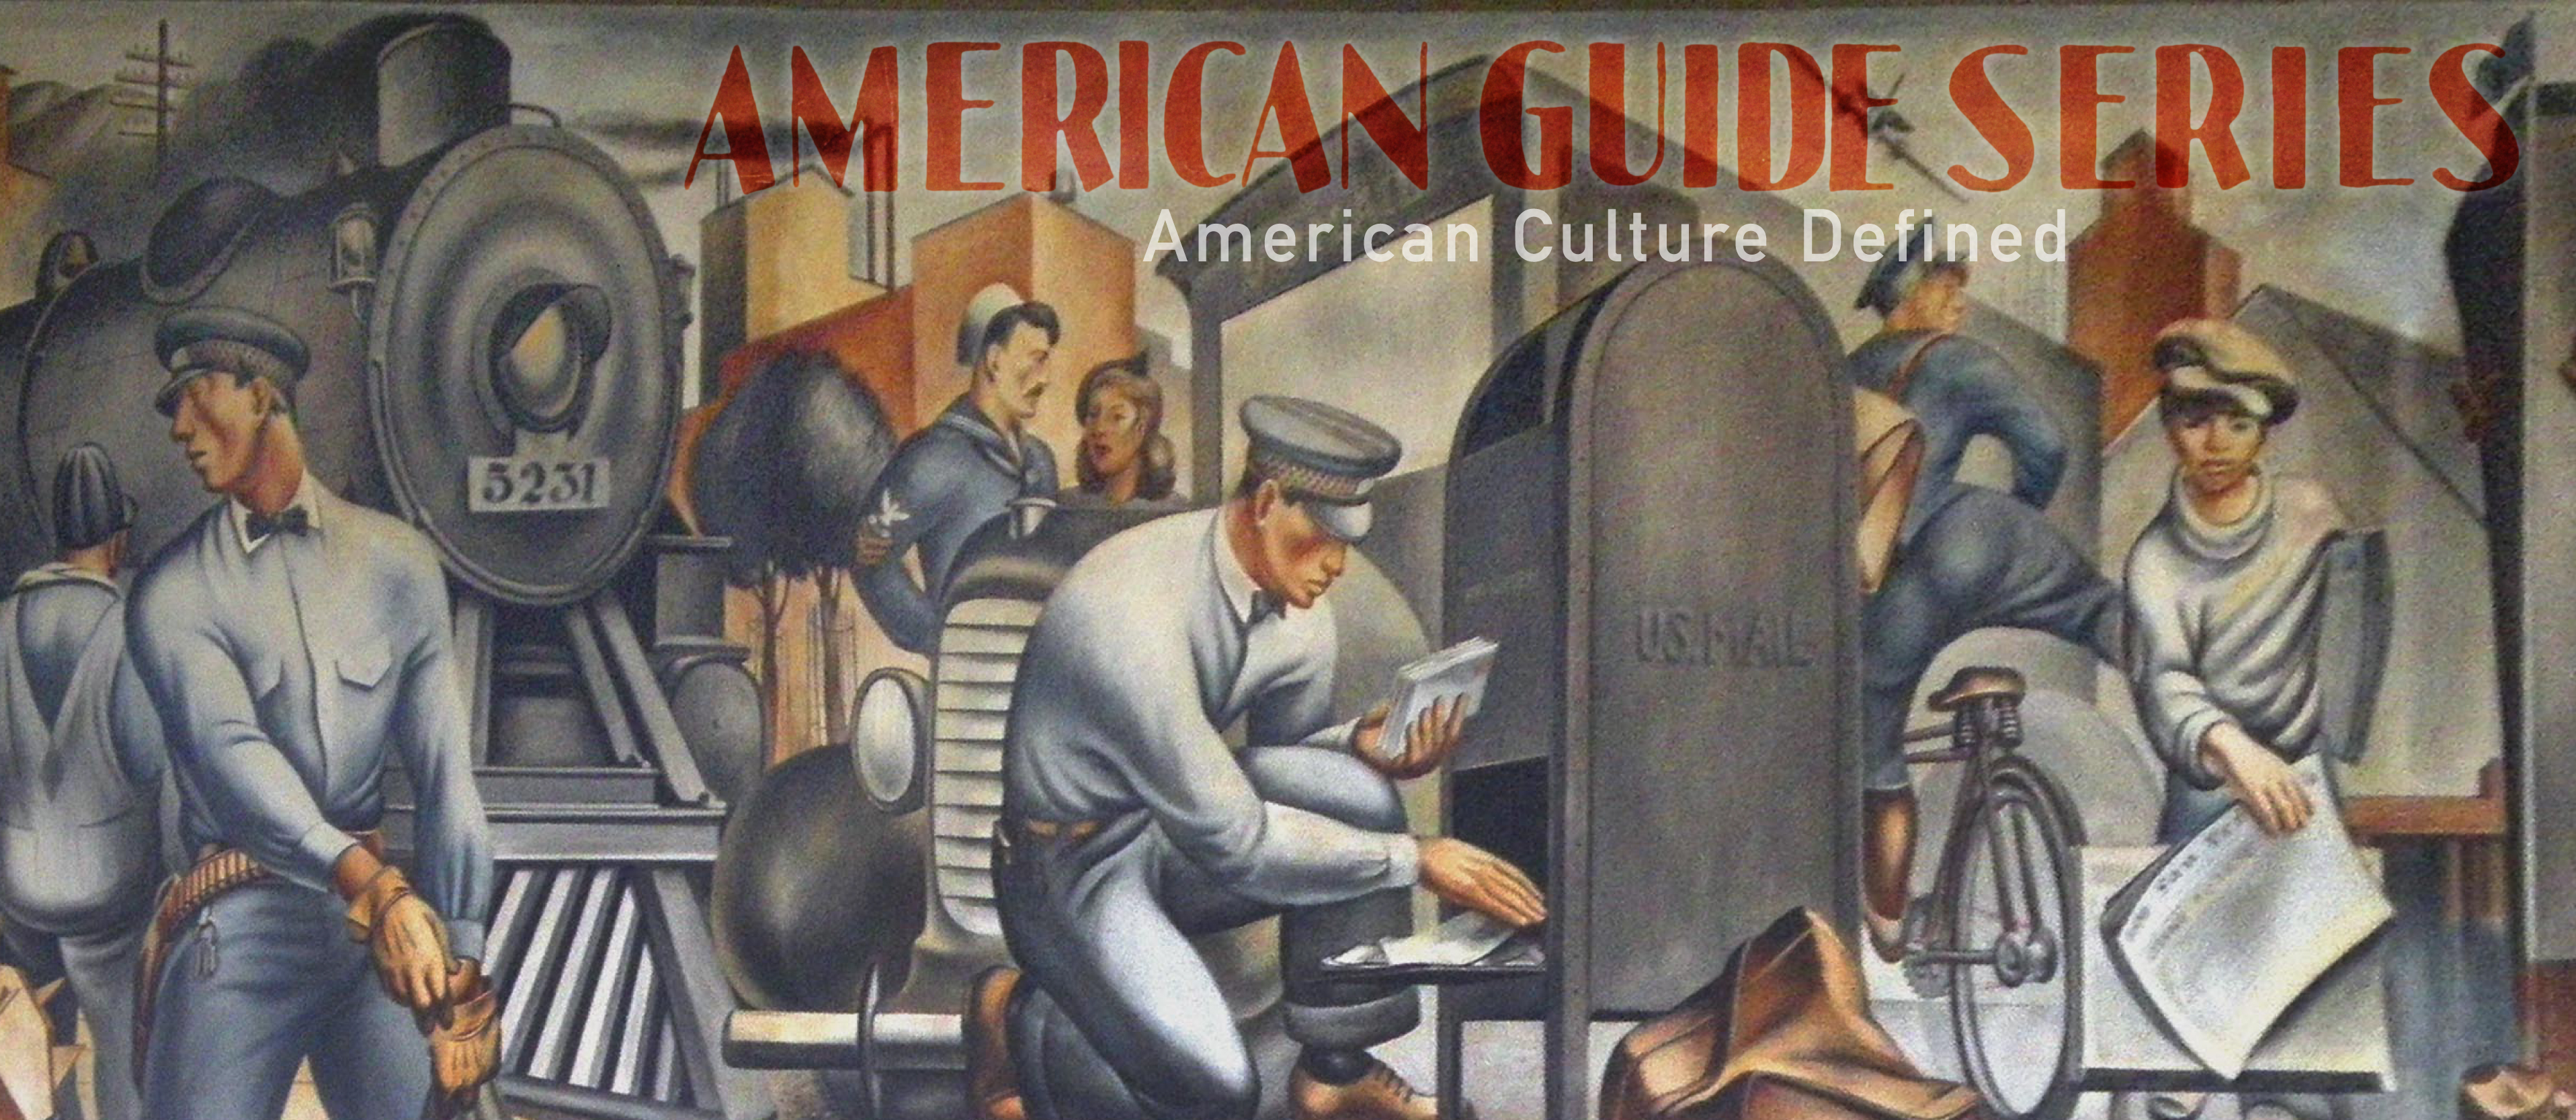 The American Guide graphic